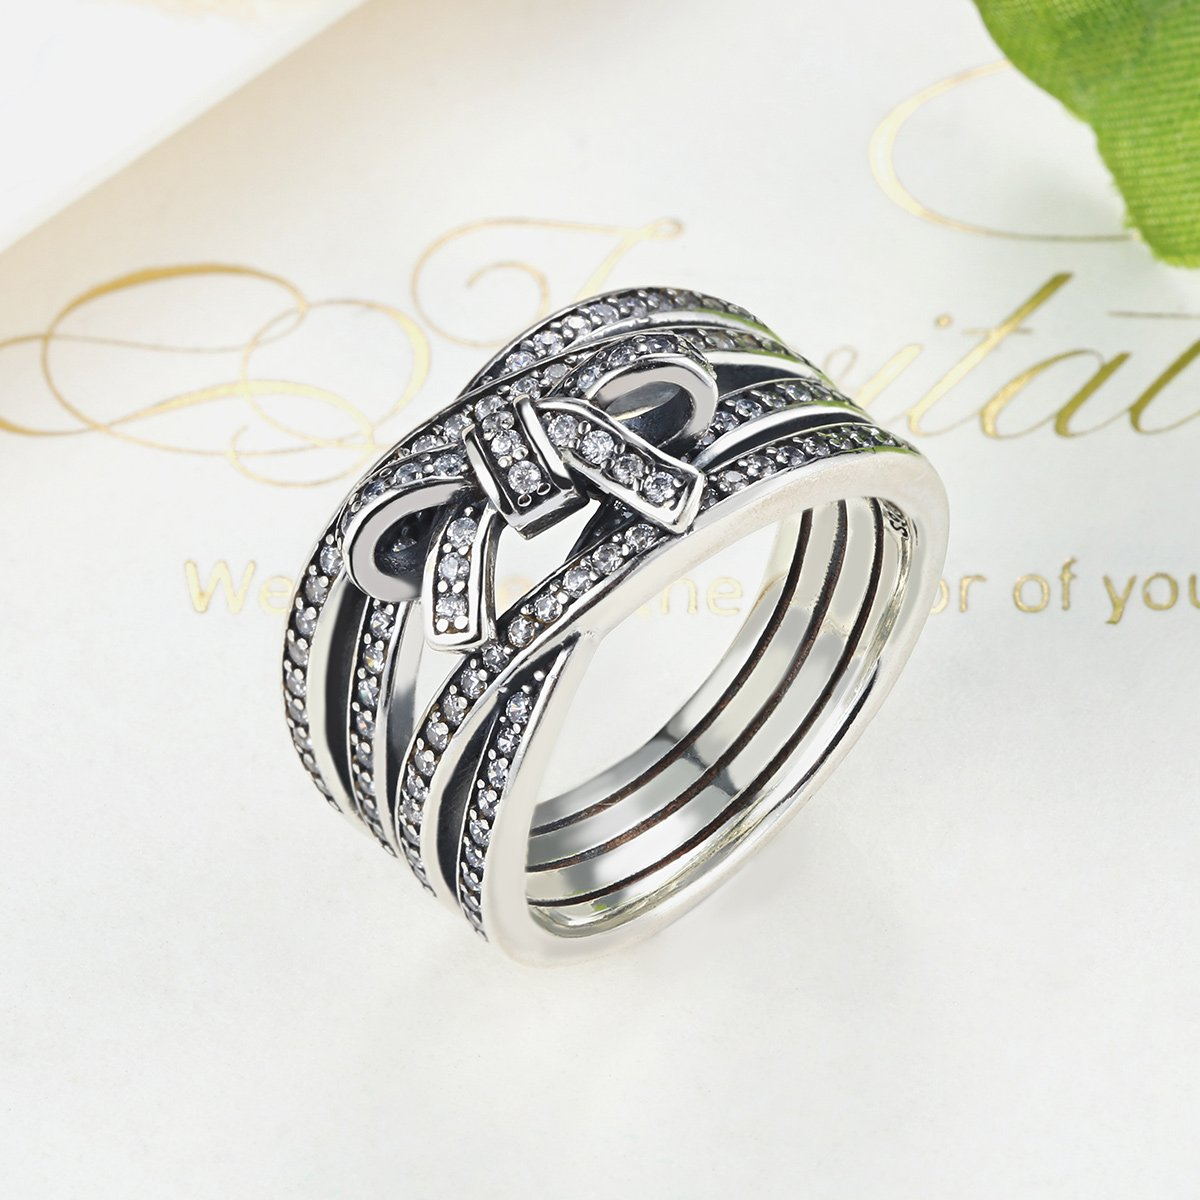 BAMOER 925 Sterling Silver Delicate Sentiments Ring 12mm Band with Sparkling Clear Cubic Zirconia Diamond Women Fashion Jewelry 6-9 (9) by BAMOER (Image #2)